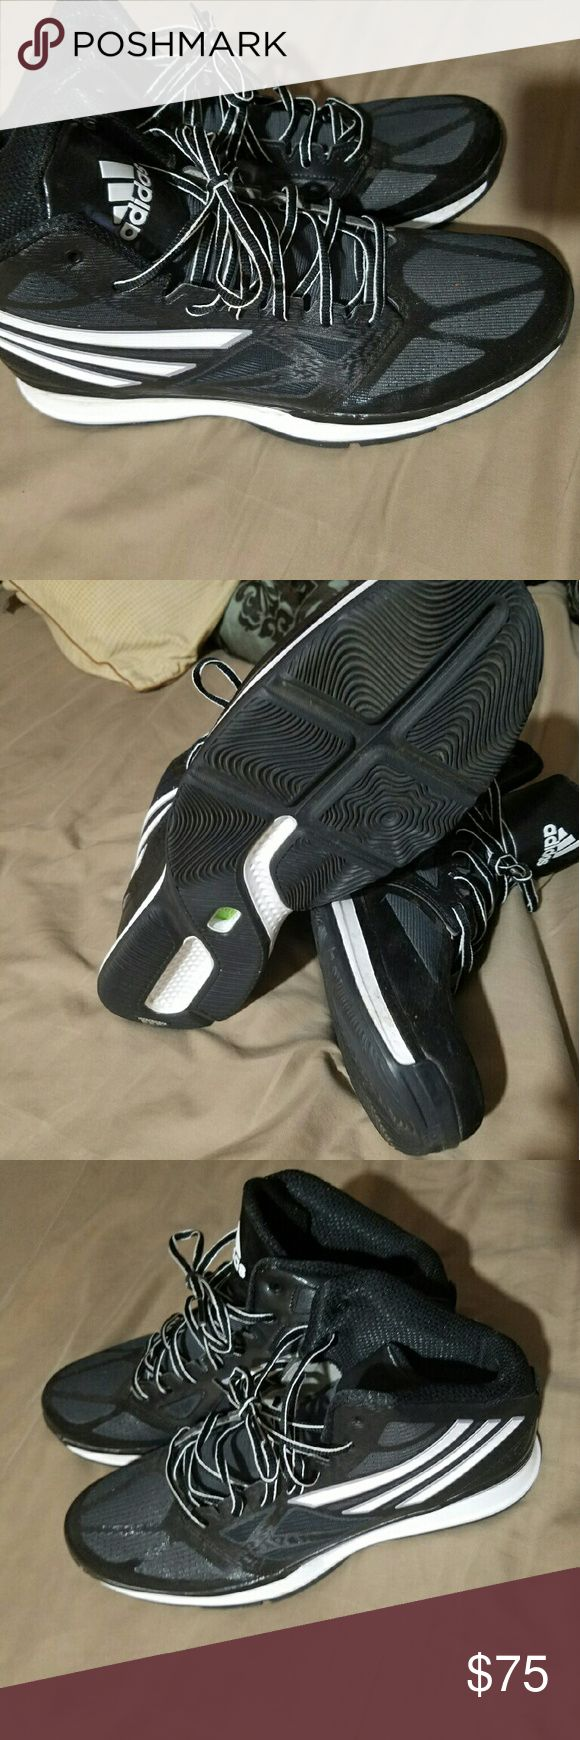 NWOT Men's size 12 Adidas basketball shoes NWOT Men's size 12 Adidas basketball shoes worn once to gym, then changed out of when I realized they were too tight. Adidas Shoes Sneakers